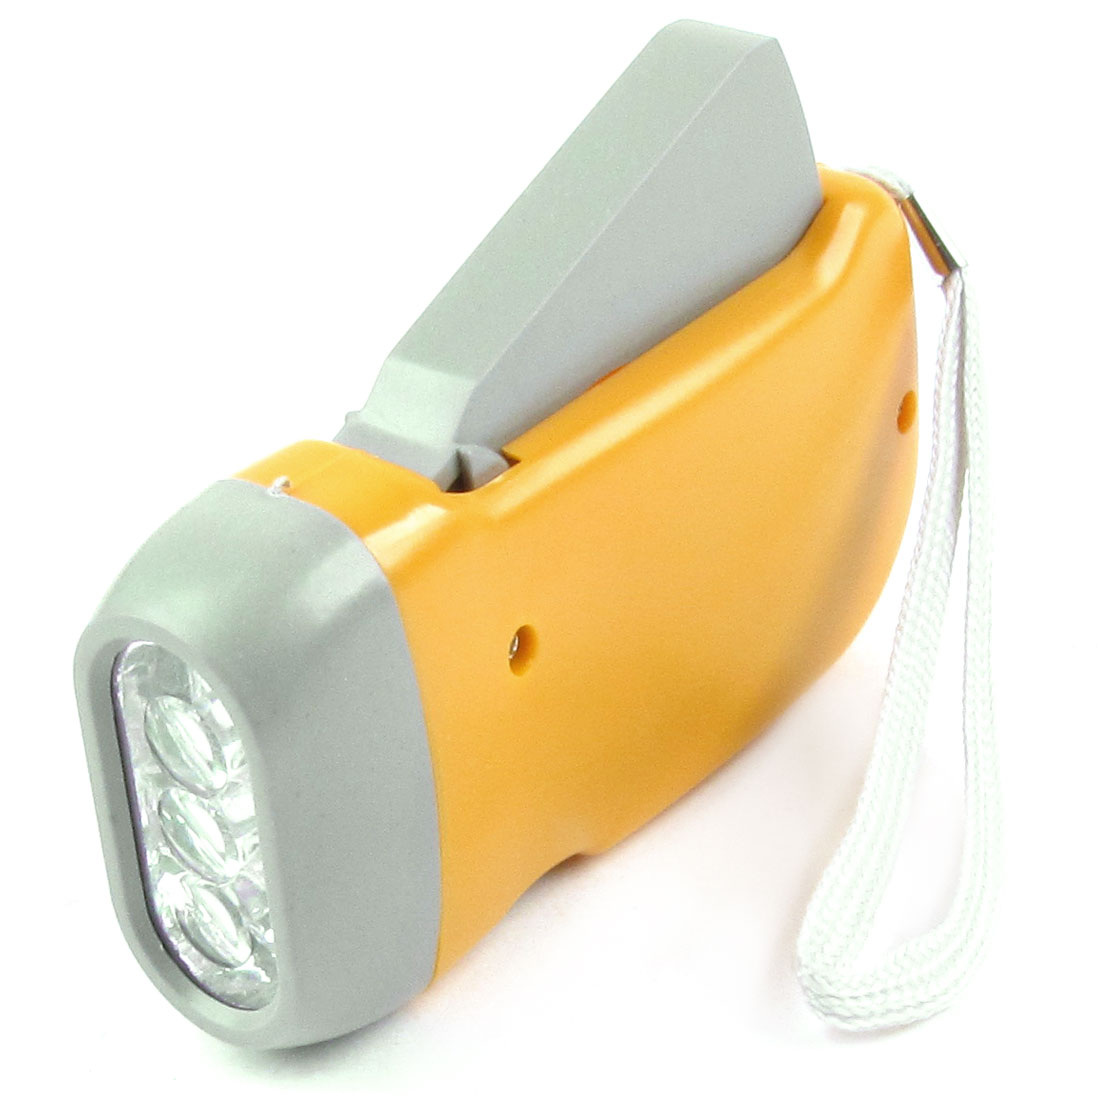 "Portable Home Orange Plastic LED Torch Light Flashlight 3.9"" Long"